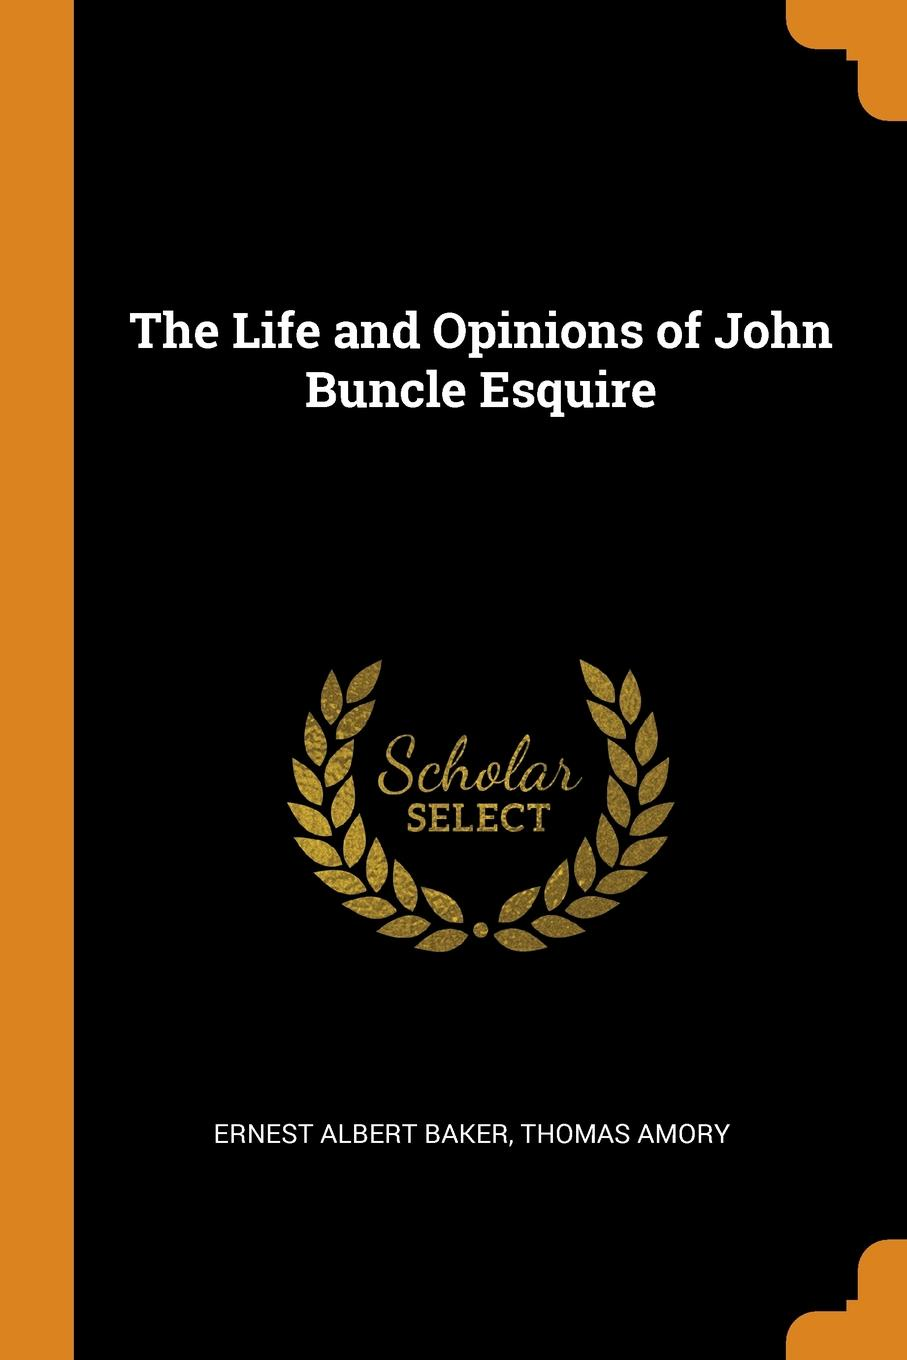 Ernest Albert Baker, Thomas Amory The Life and Opinions of John Buncle Esquire